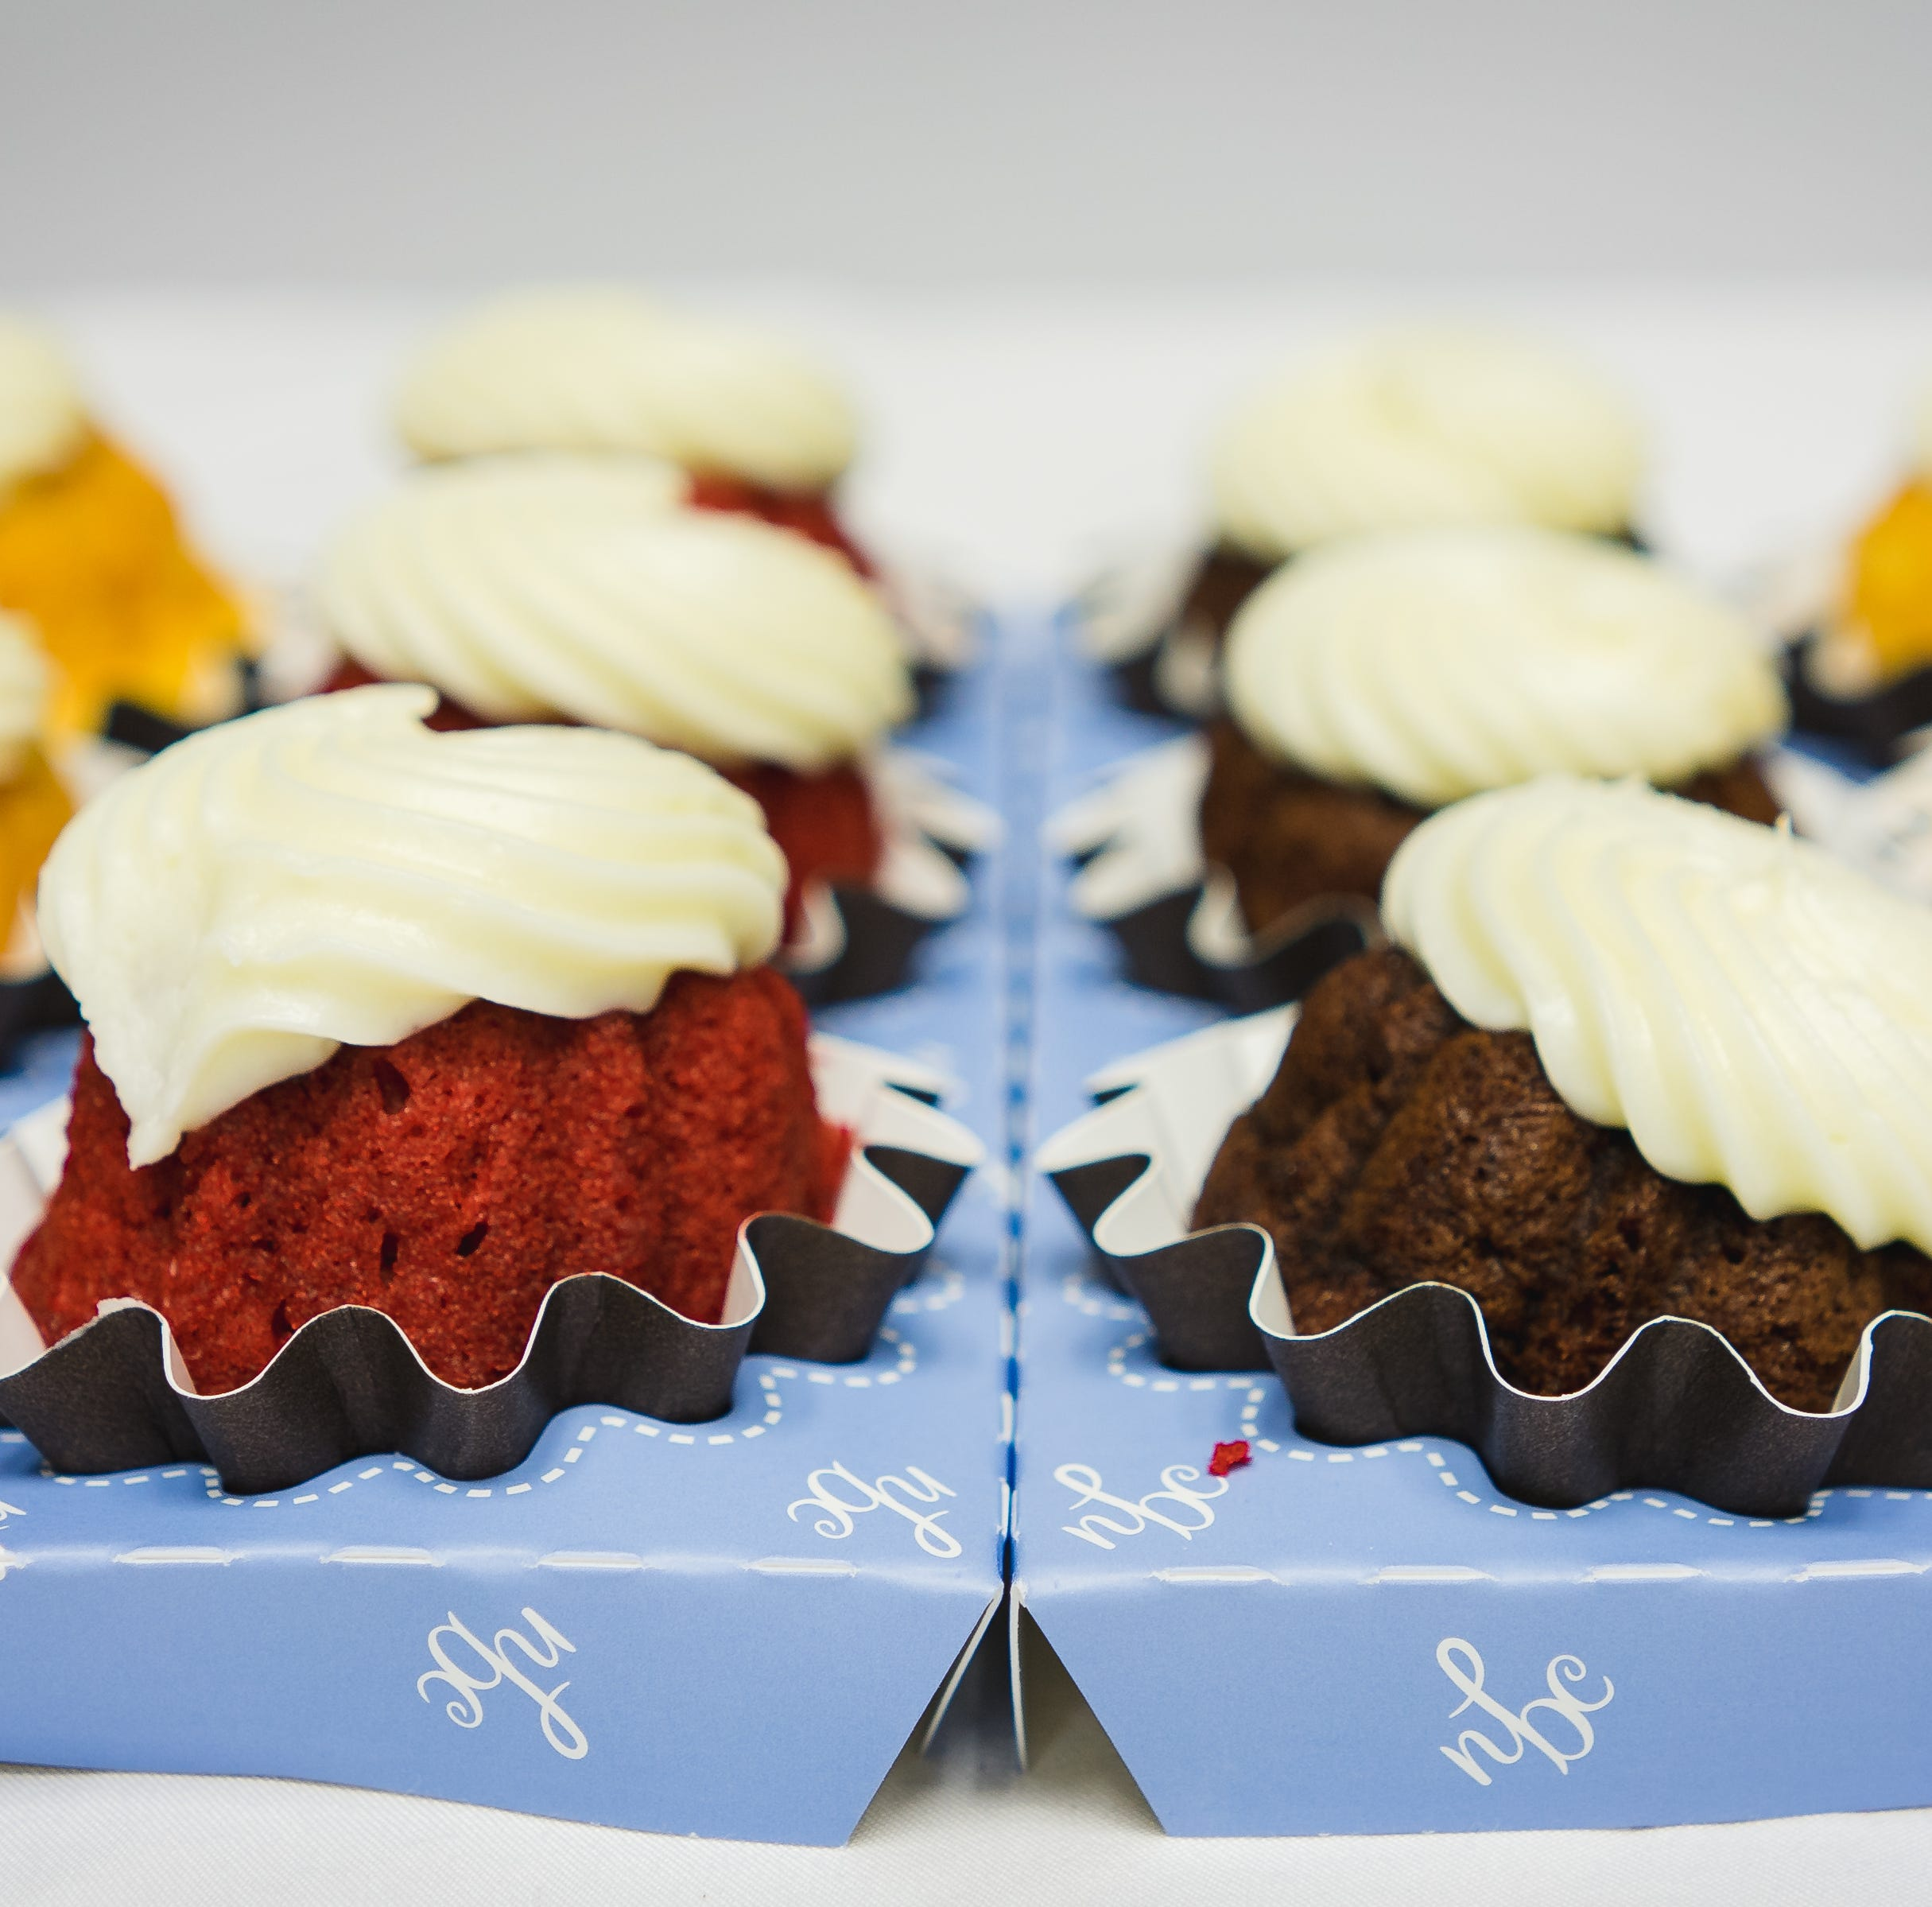 Nothing Bundt Cakes in Pensacola giving away 300 free Bundtlets to celebrate 300th store